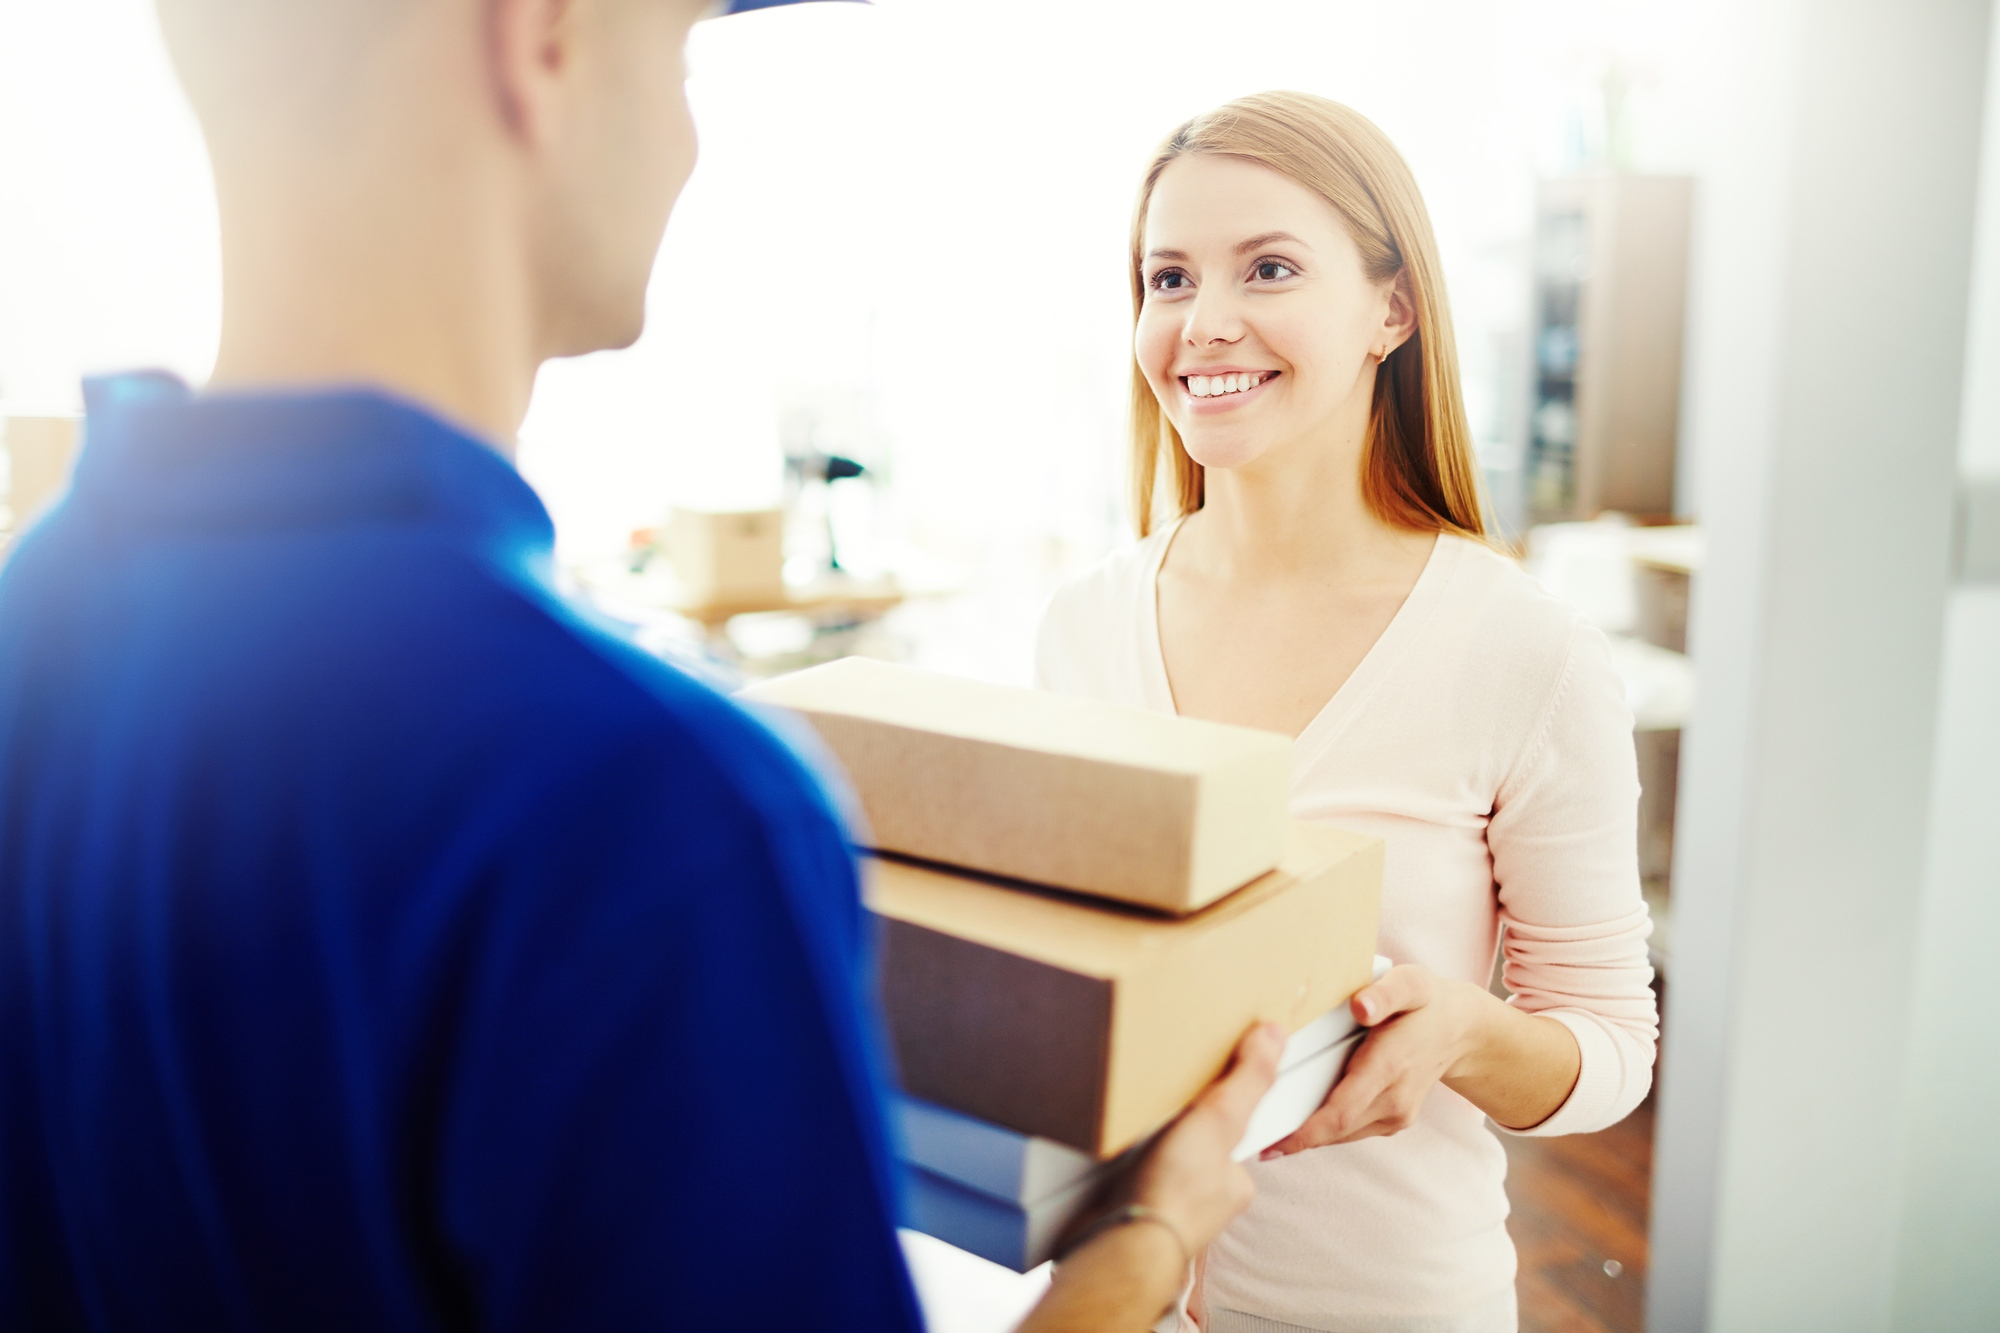 Happy young woman receiving a box from mailman